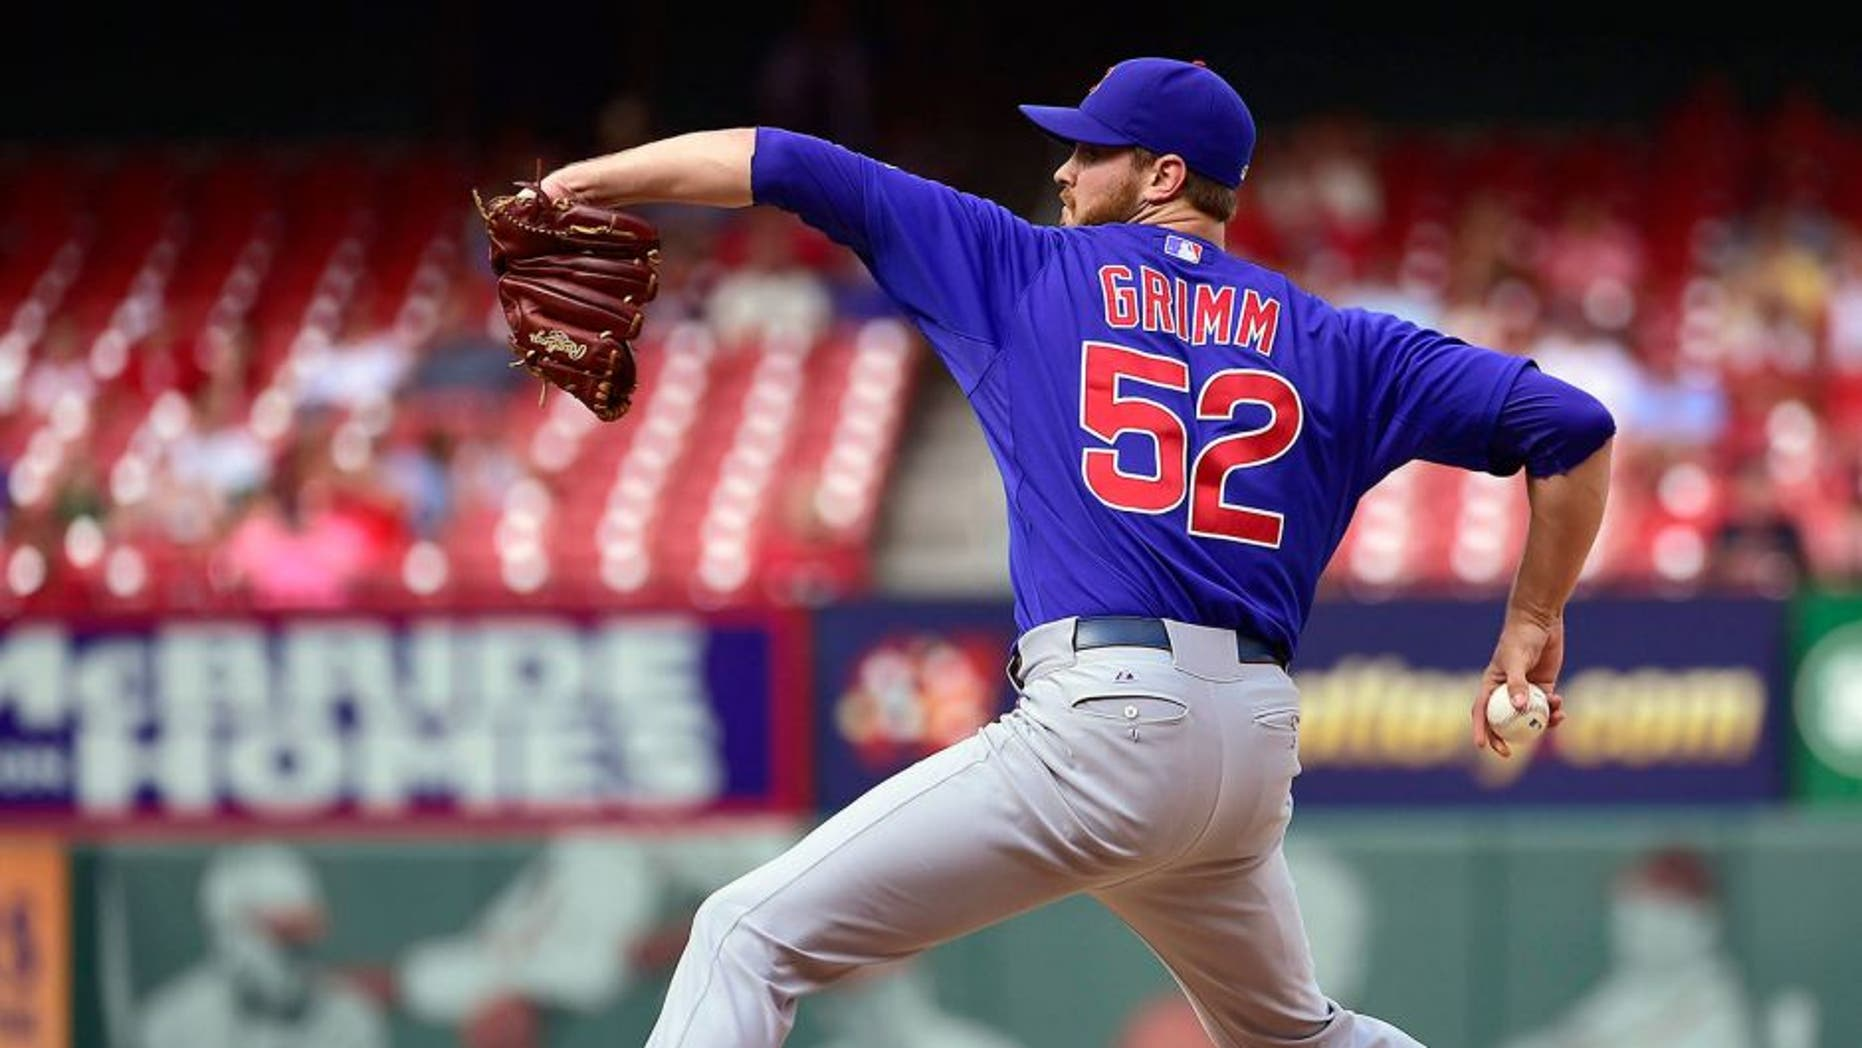 Aug 30, 2014; St. Louis, MO, USA; Chicago Cubs relief pitcher Justin Grimm (52) delivers a pitch against the St. Louis Cardinals during the ninth inning at Busch Stadium. The Cubs defeated the Cardinals 5-1. Mandatory Credit: Scott Rovak-USA TODAY Sports